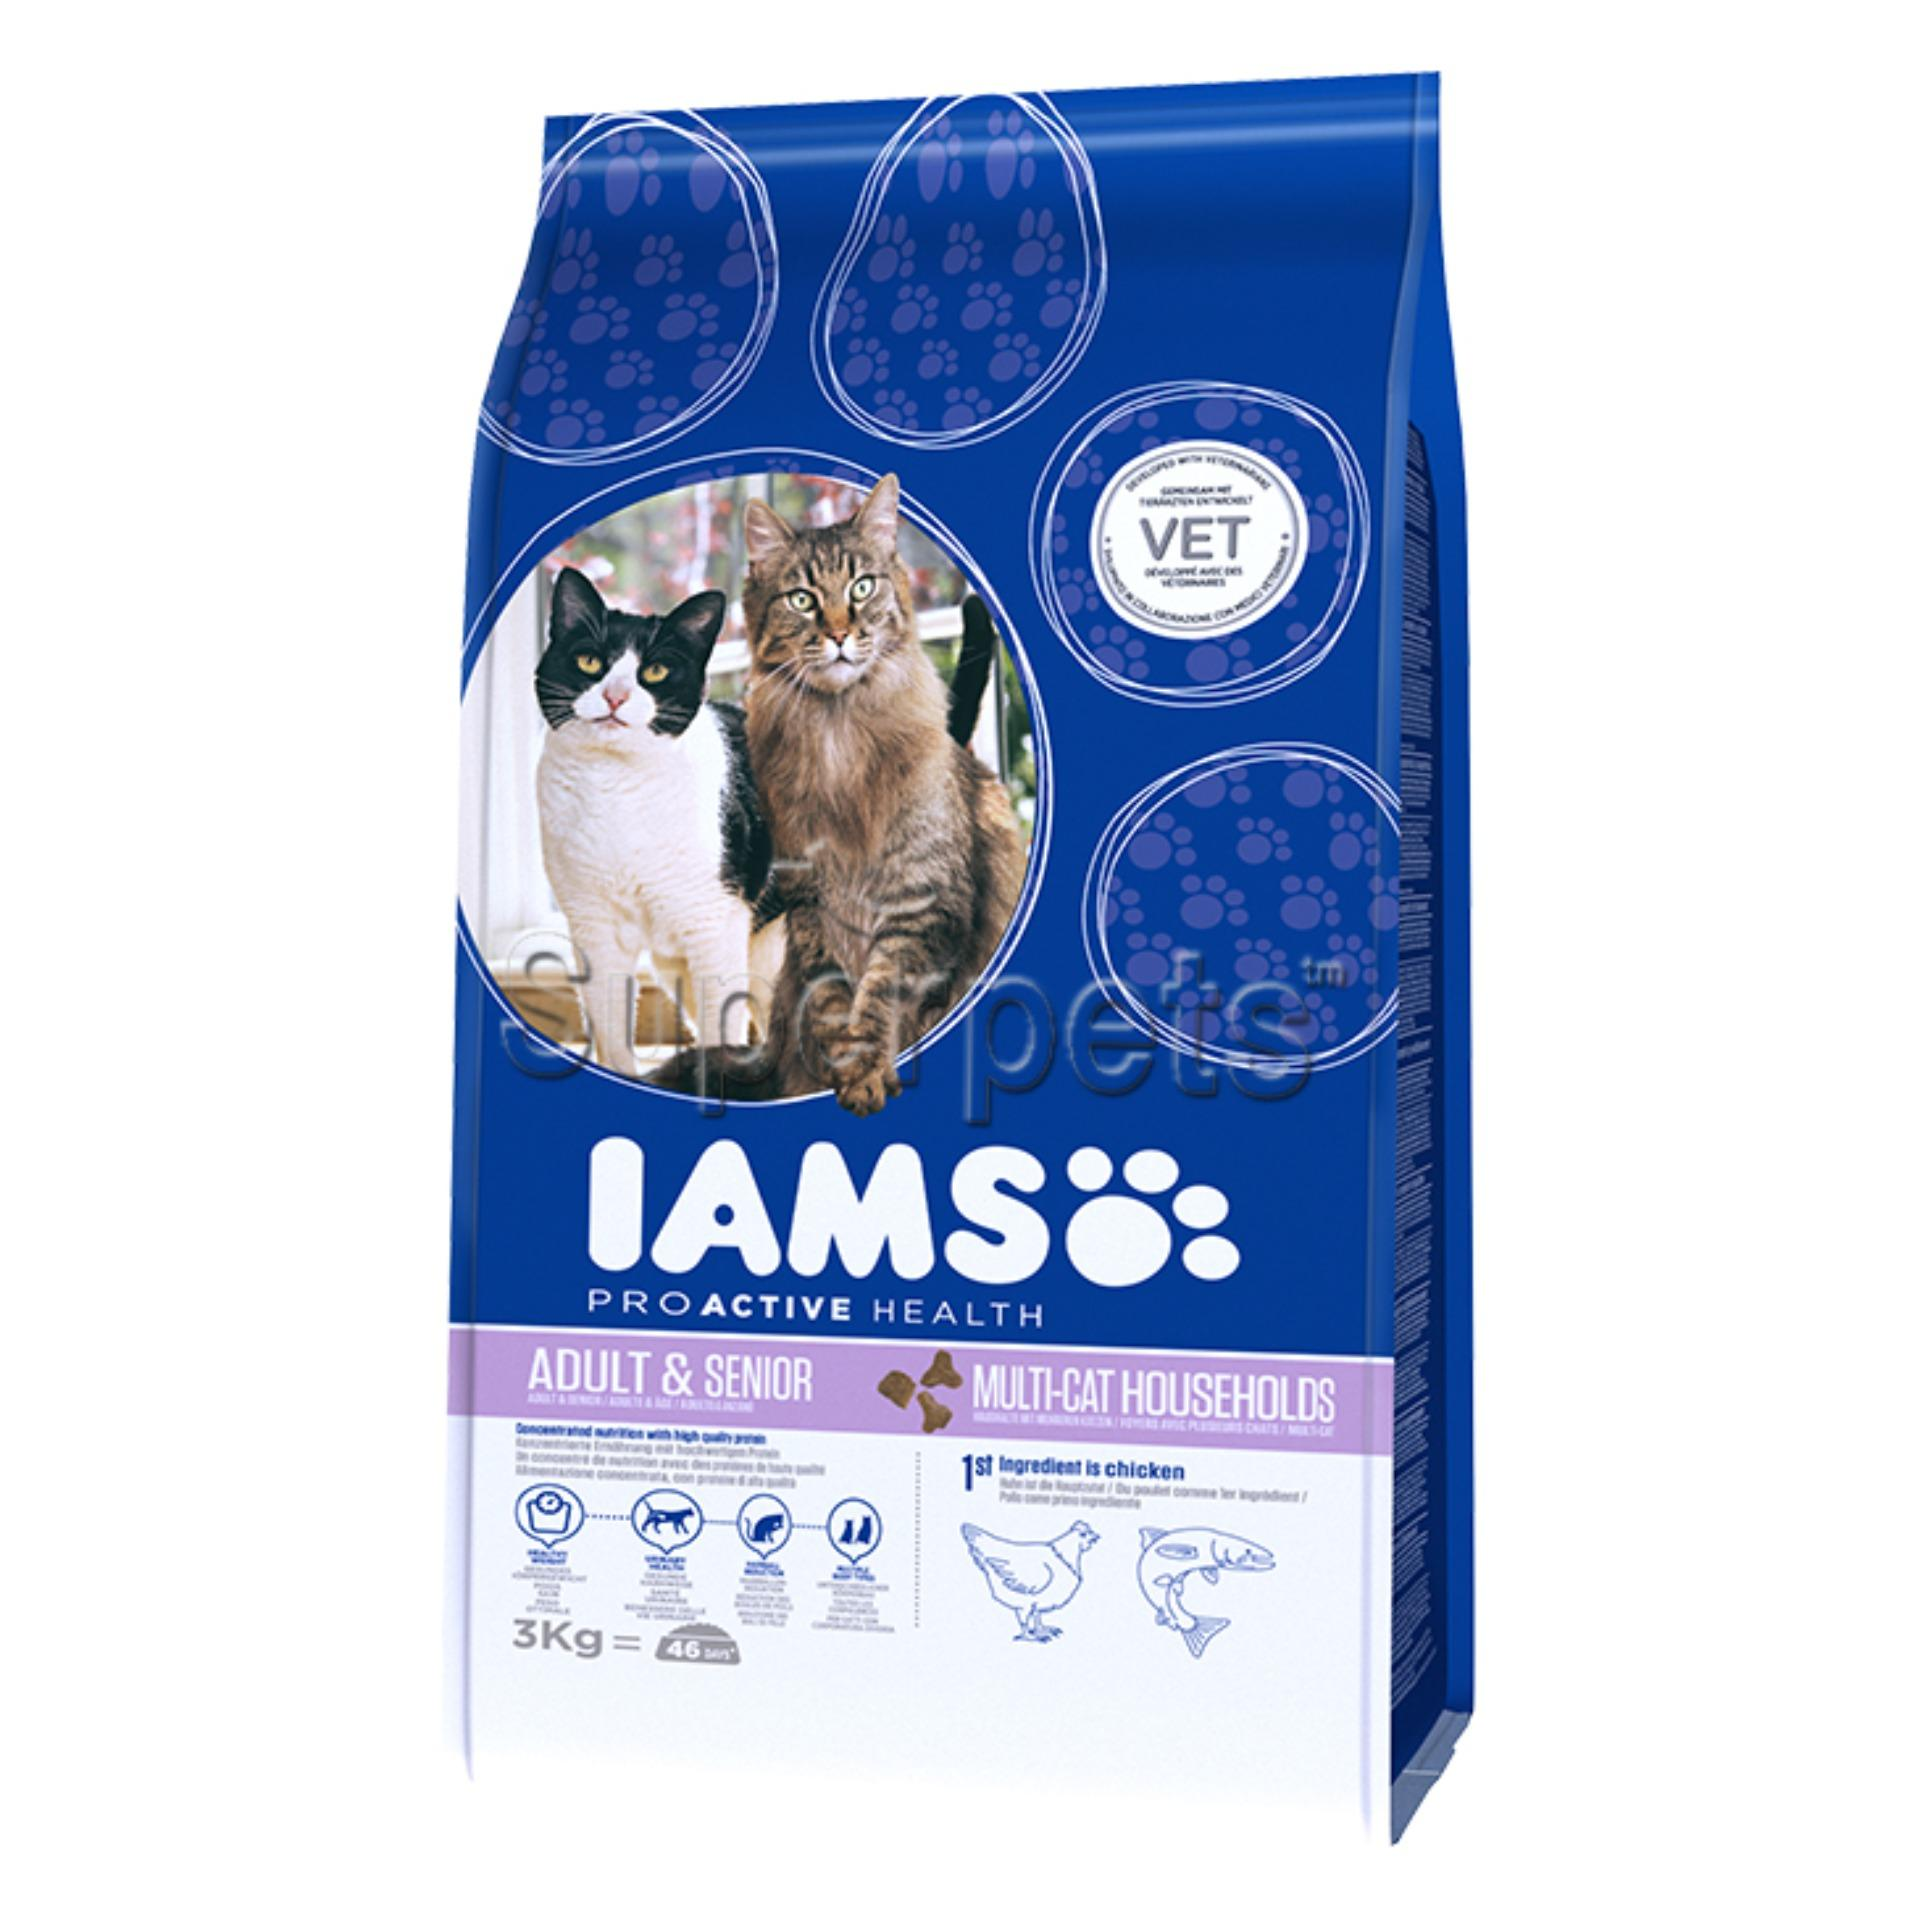 Best Rated Iams Proactive Health Multi Cat Complete *d*lt 1 Years Norwegian Salmon And Chicken 3Kg